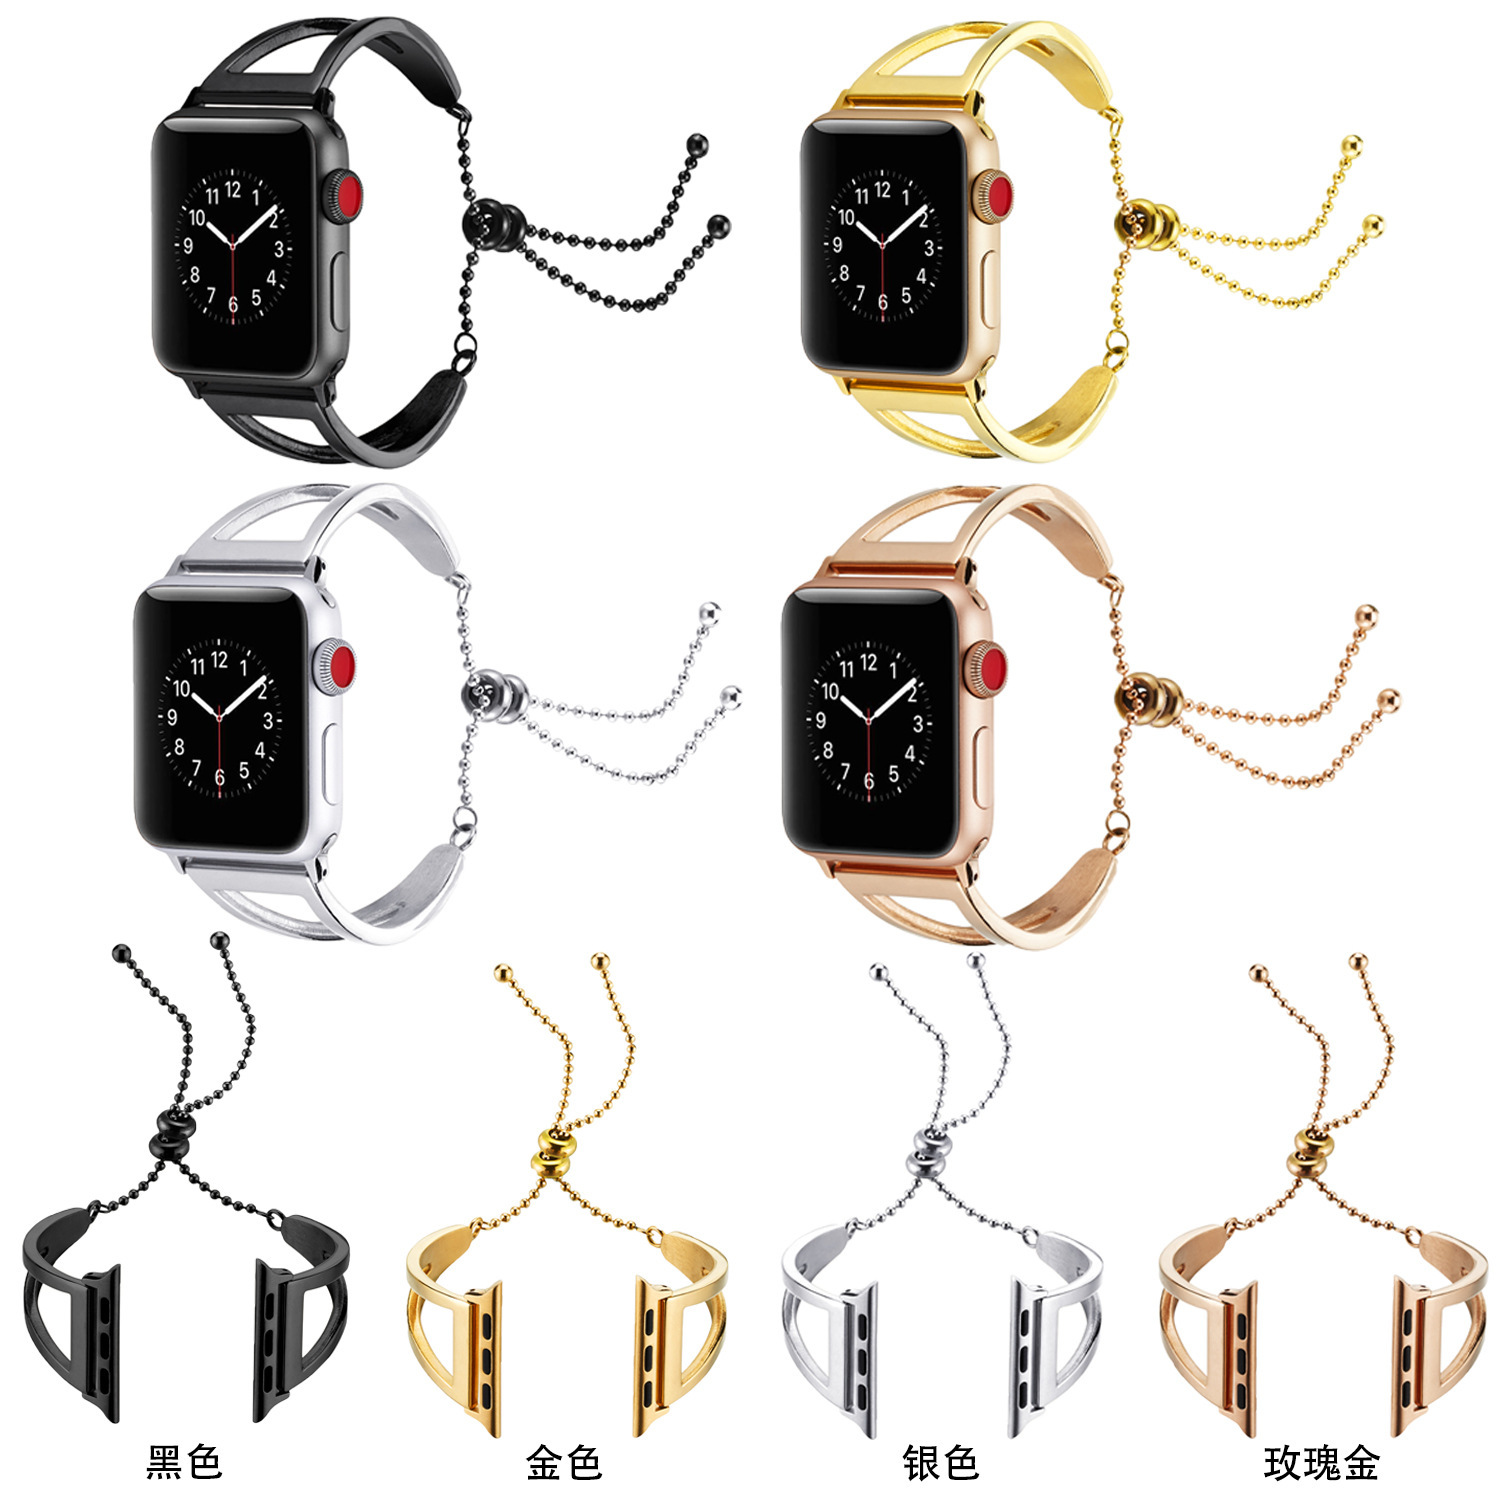 For Apple Watch Stainless Steel Bracelet 1234 Generation Applicable APPLE Watch Hollow Out V Shaped Telescopic Watch Strap